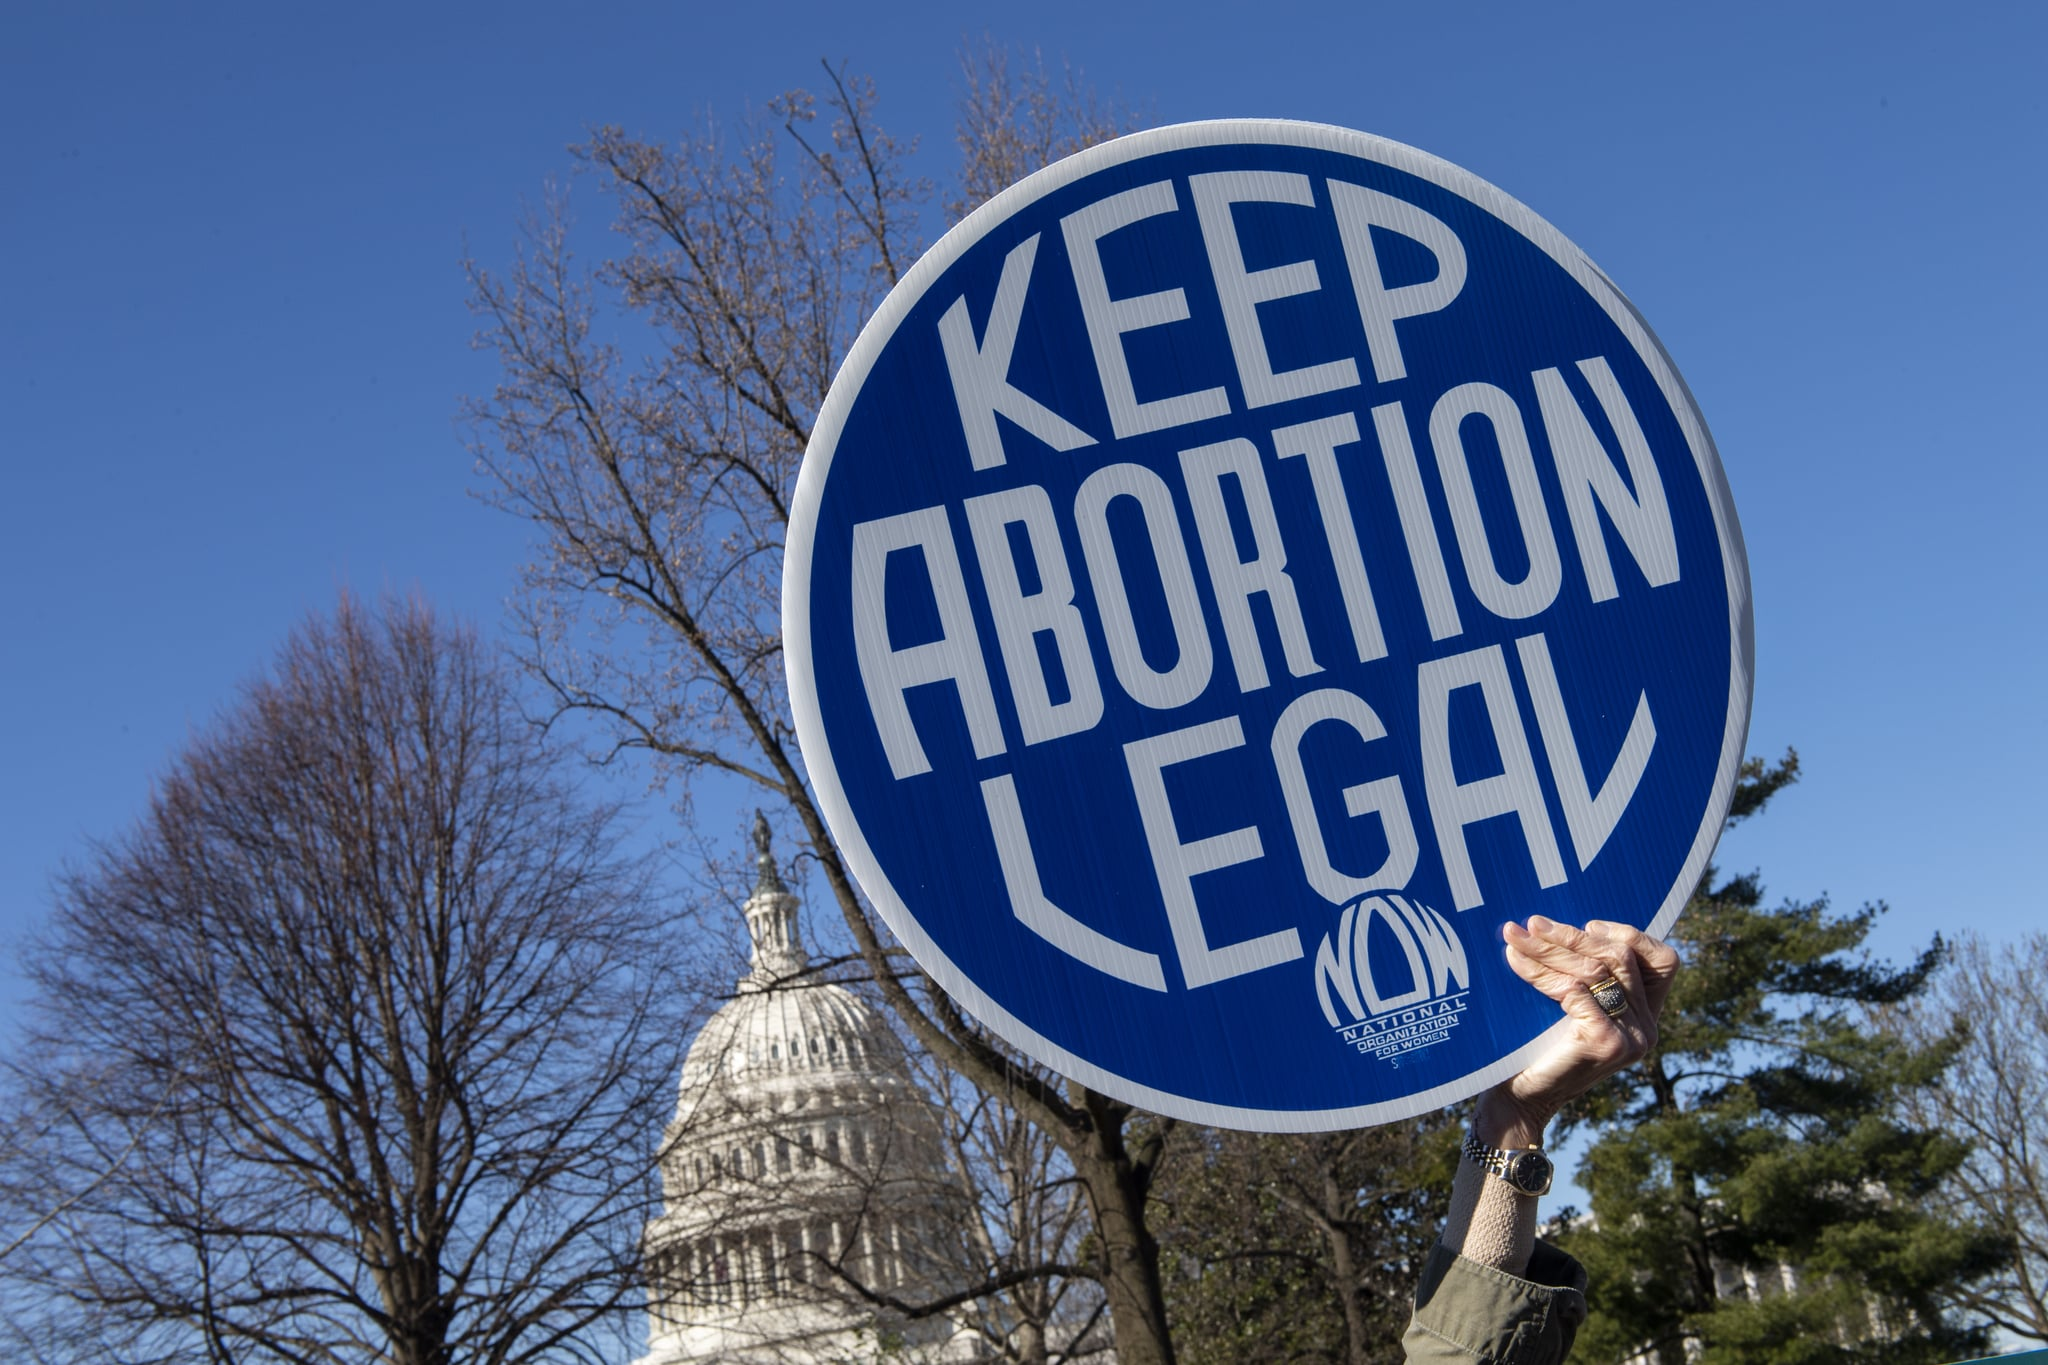 UNITED STATES - MARCH 4: Pro-choice abortion activists protest during a demonstration outside the Supreme Court in Washington on March 4, 2020, as the Court hears oral arguments regarding a Louisiana law about abortion access on Wednesday, March 4, 2020. (Photo by Caroline Brehman/CQ-Roll Call, Inc via Getty Images)